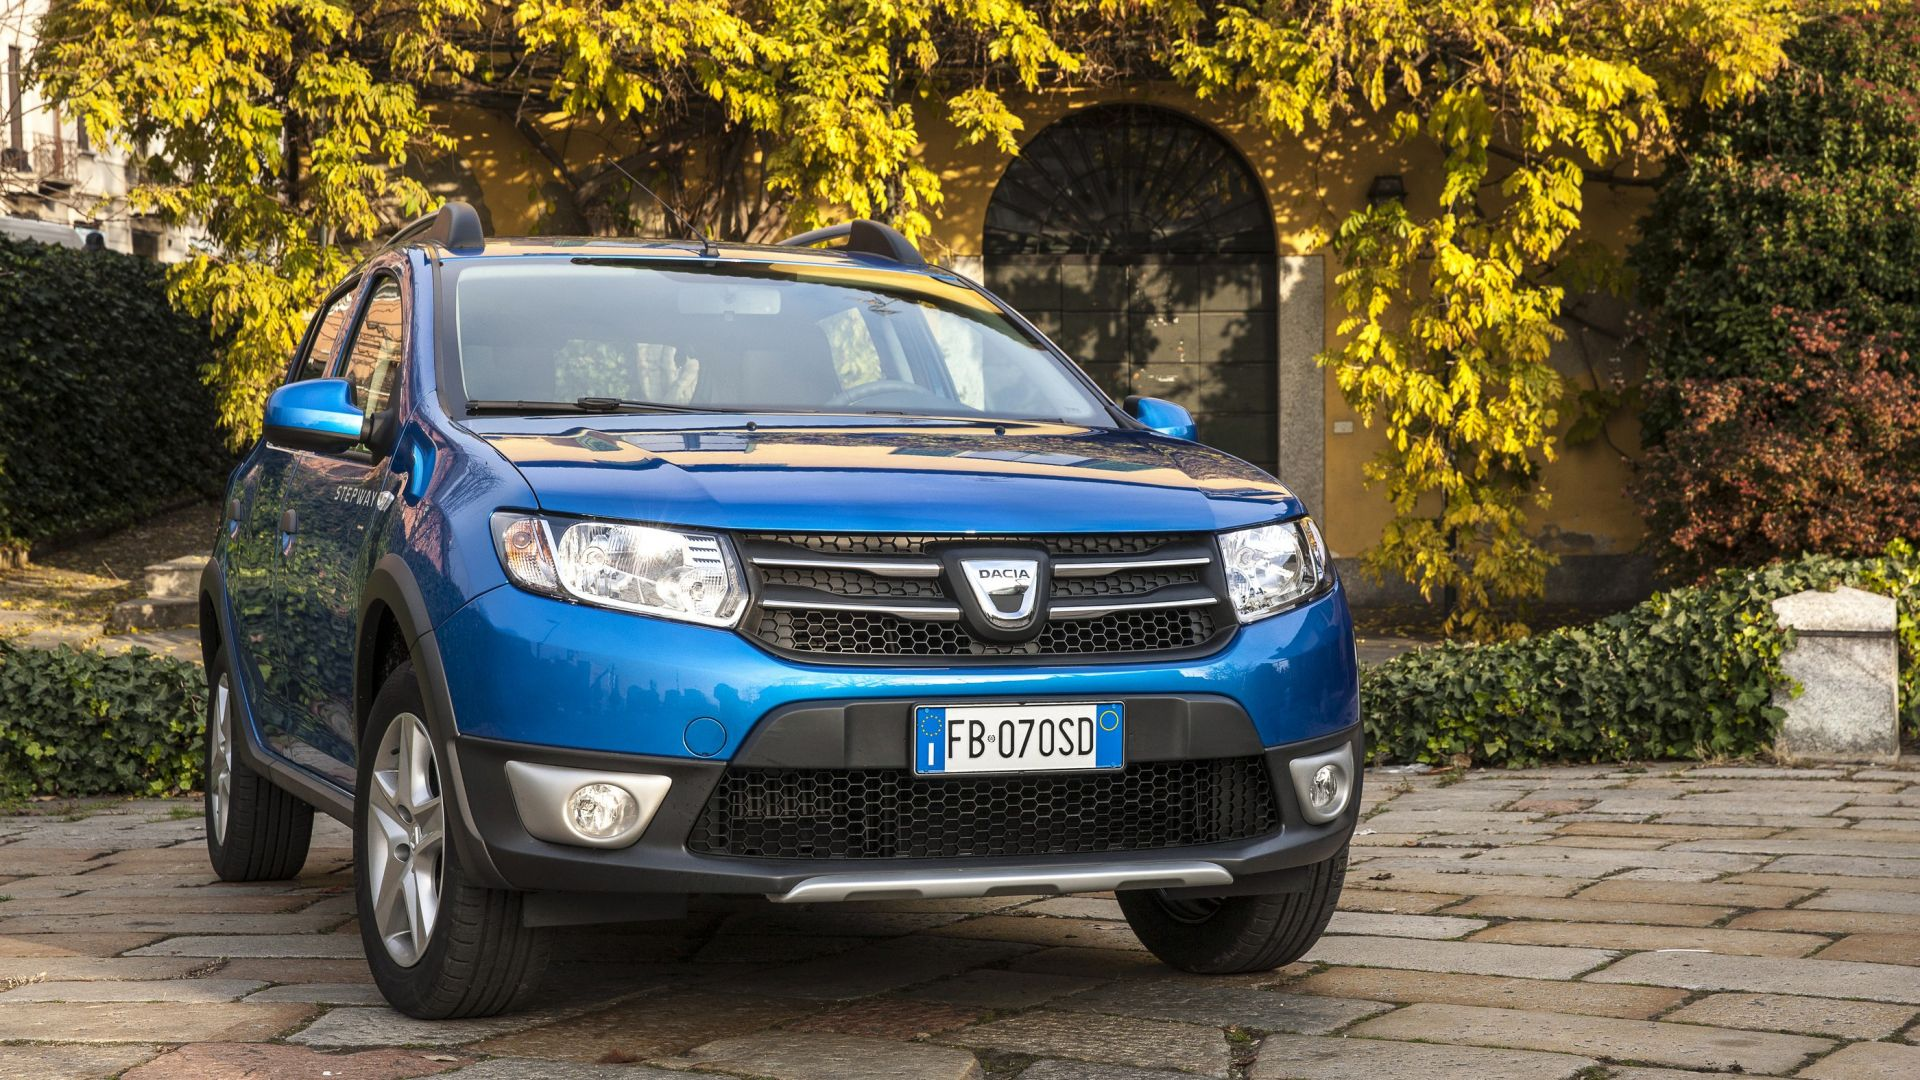 prova su strada dacia sandero stepway 0 9 tce 90 cv turbo gpl motorbox. Black Bedroom Furniture Sets. Home Design Ideas